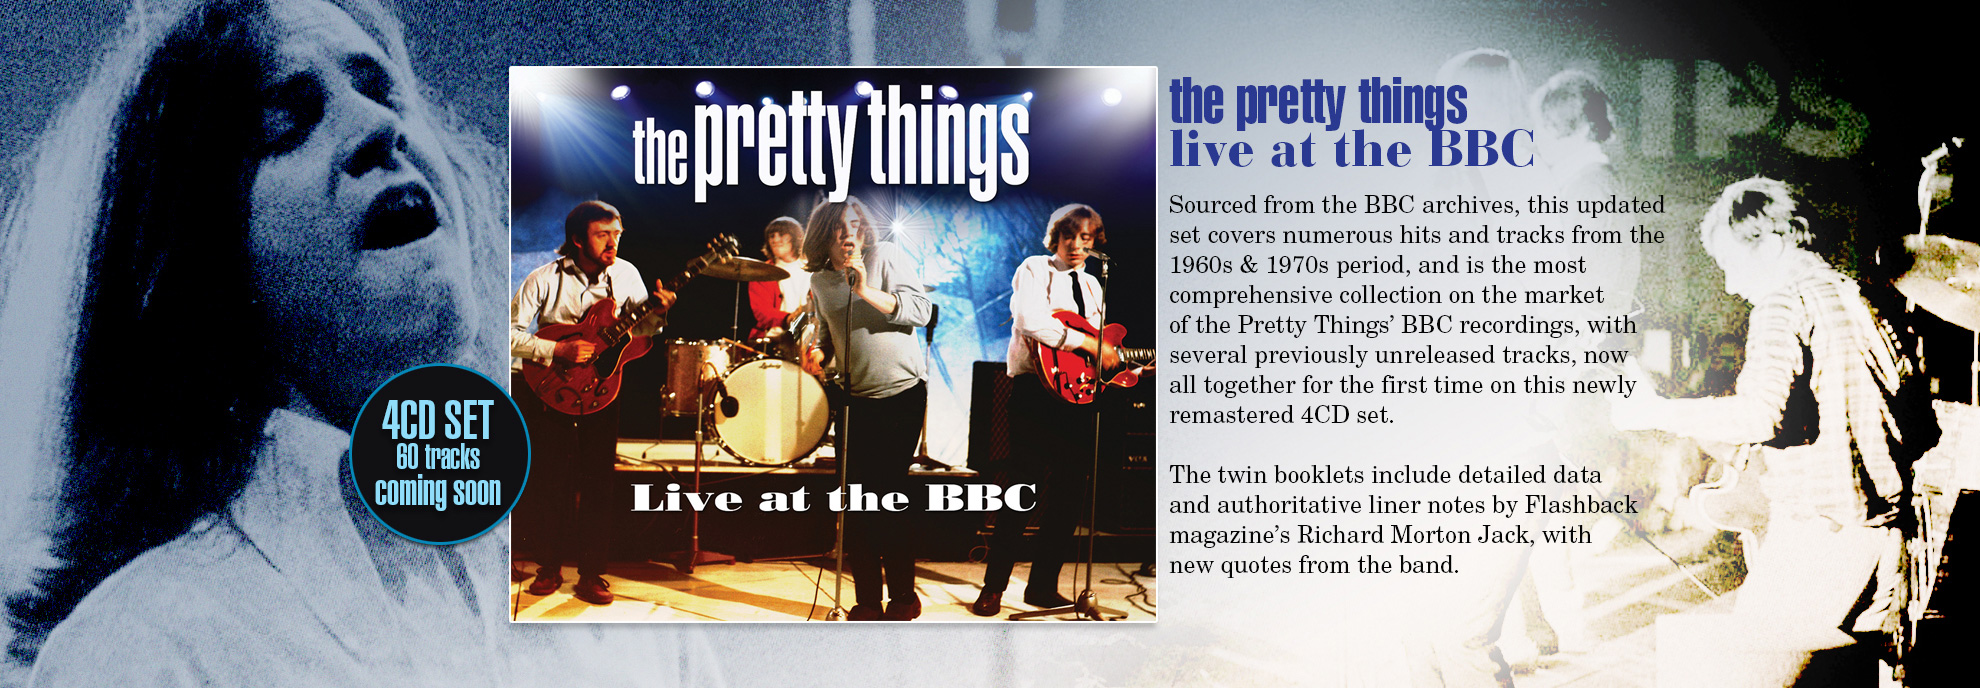 Pretty-Things-Live-at-BBC-new-banner-size1